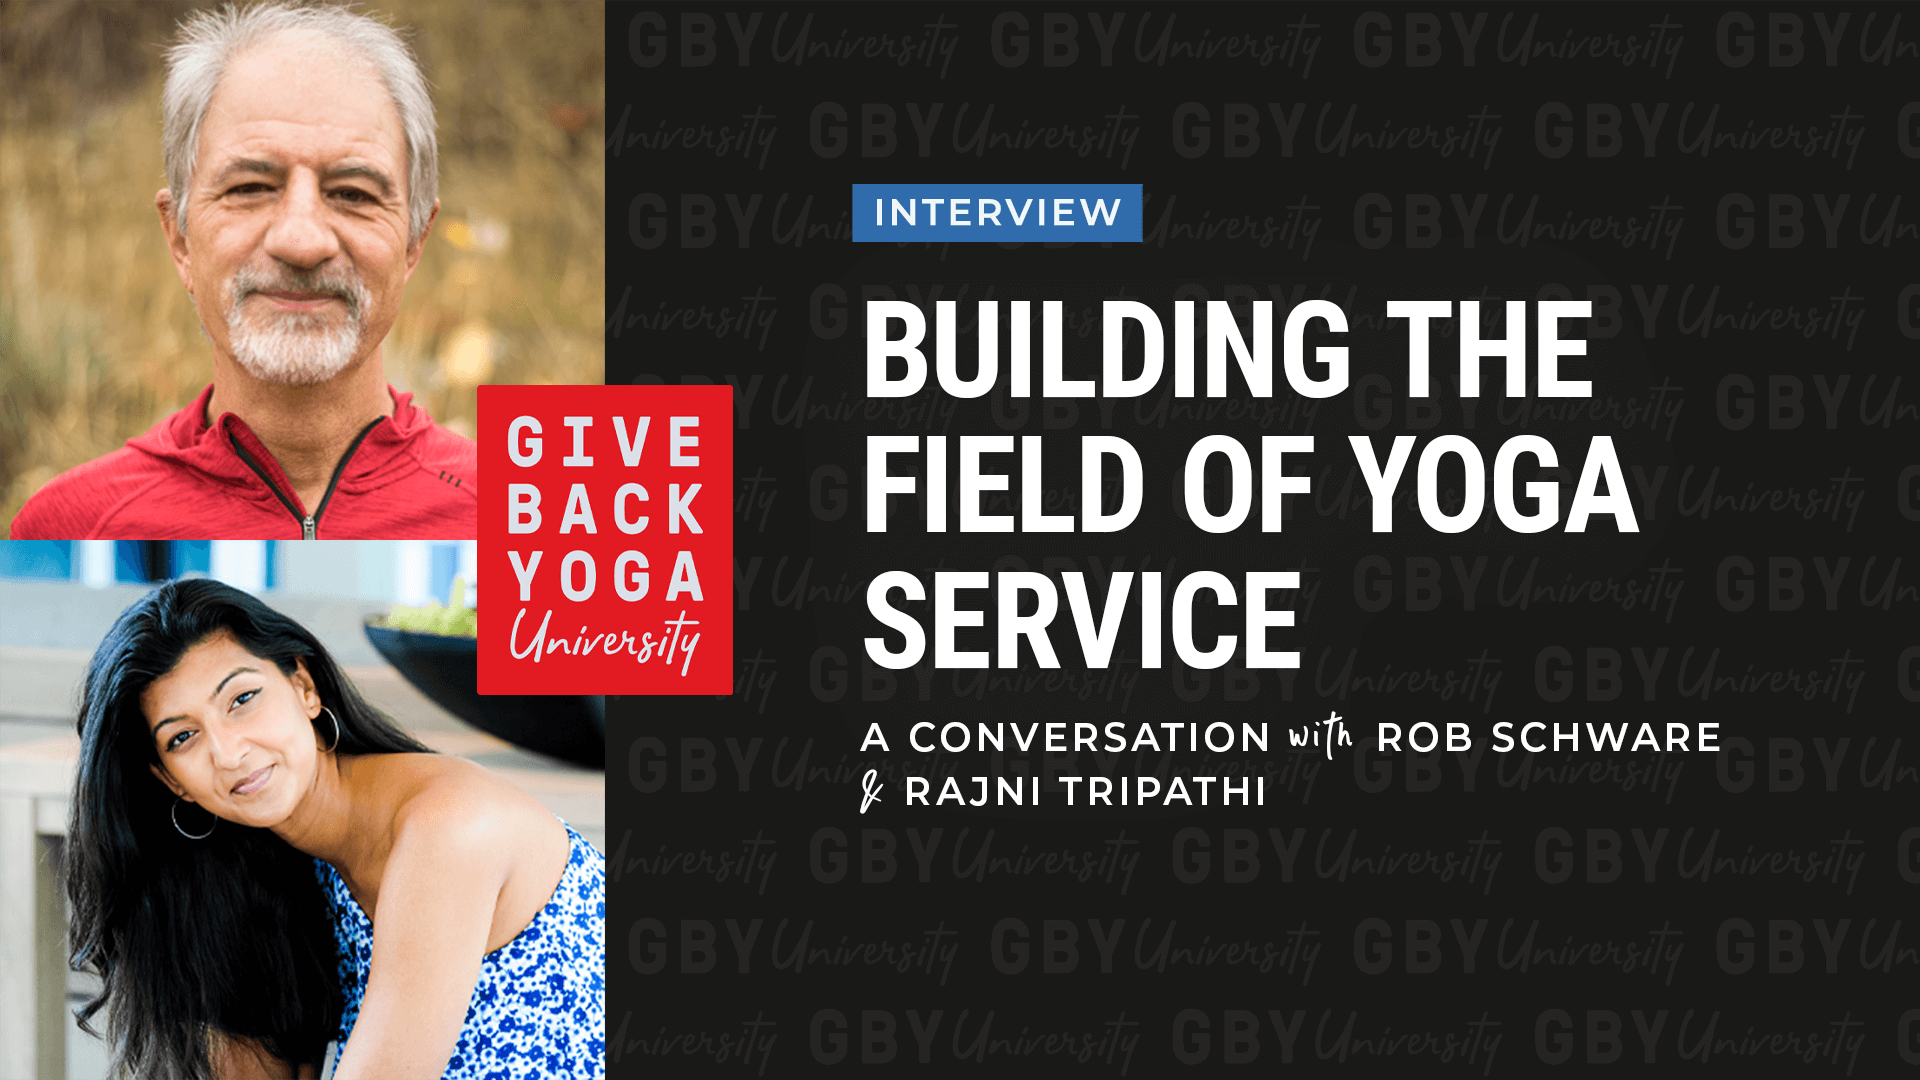 Building the Field of Yoga Service: A Conversation with Rob Schware and Rajni Tripathi